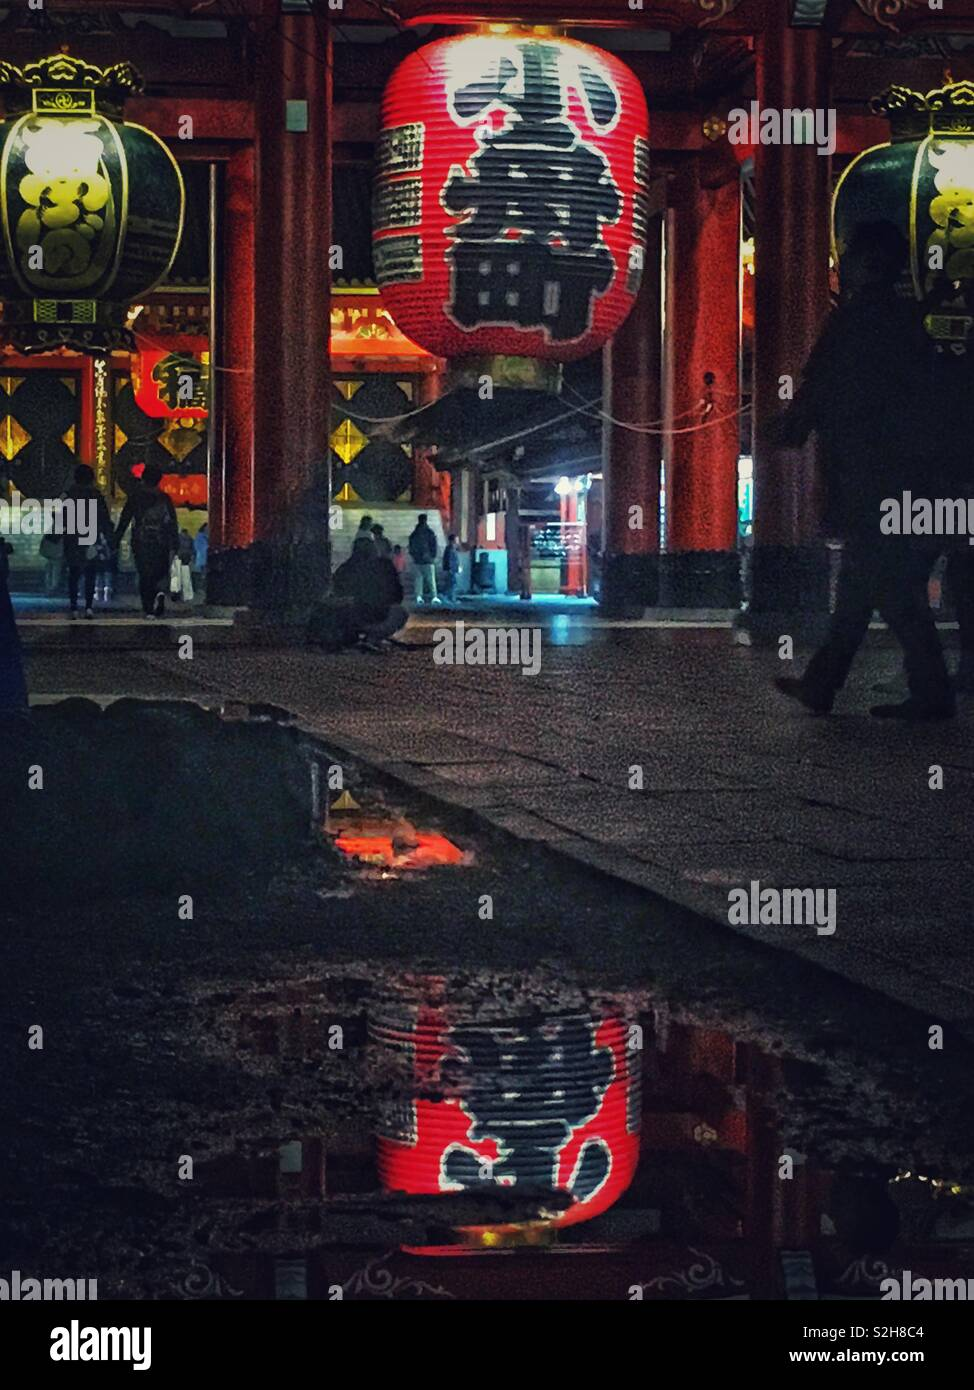 Sensoji Temple in the evening of a rainy day - Stock Image